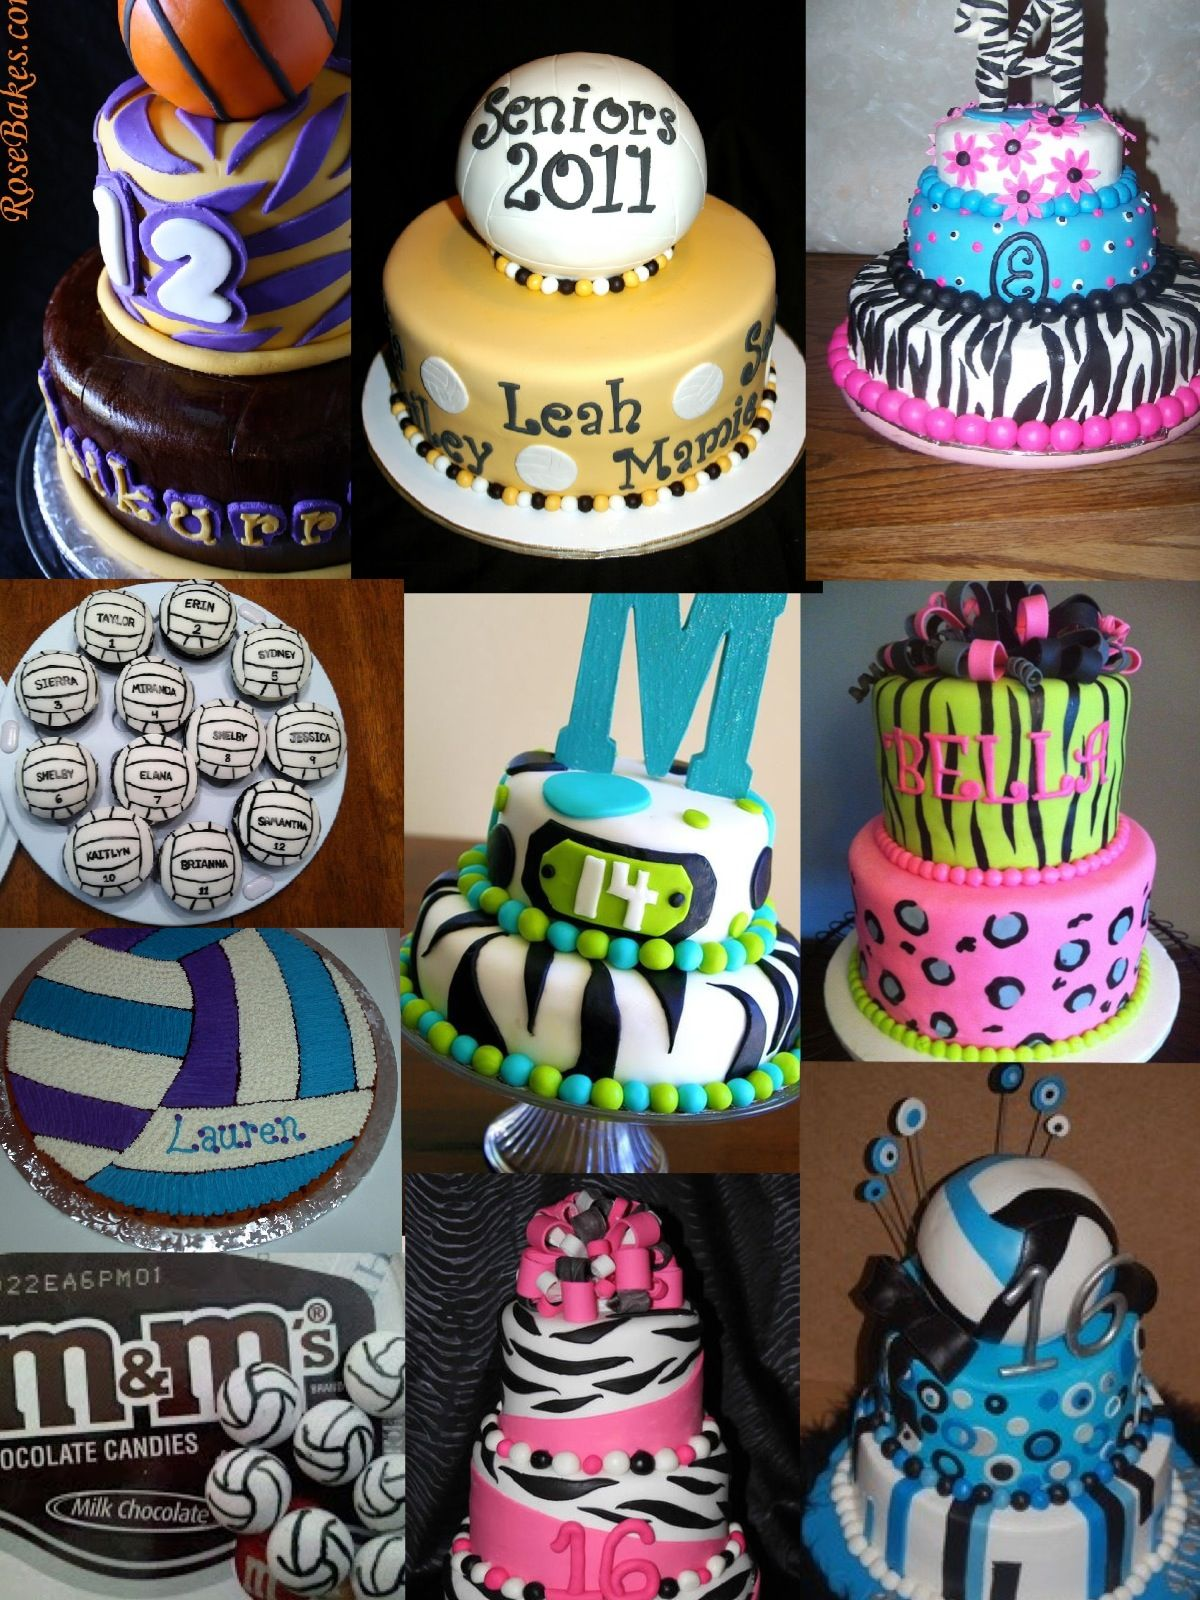 Birthday Cake Ideas For Teens Birthday Cakes For Teens Volleyball Cakes Cake Creations